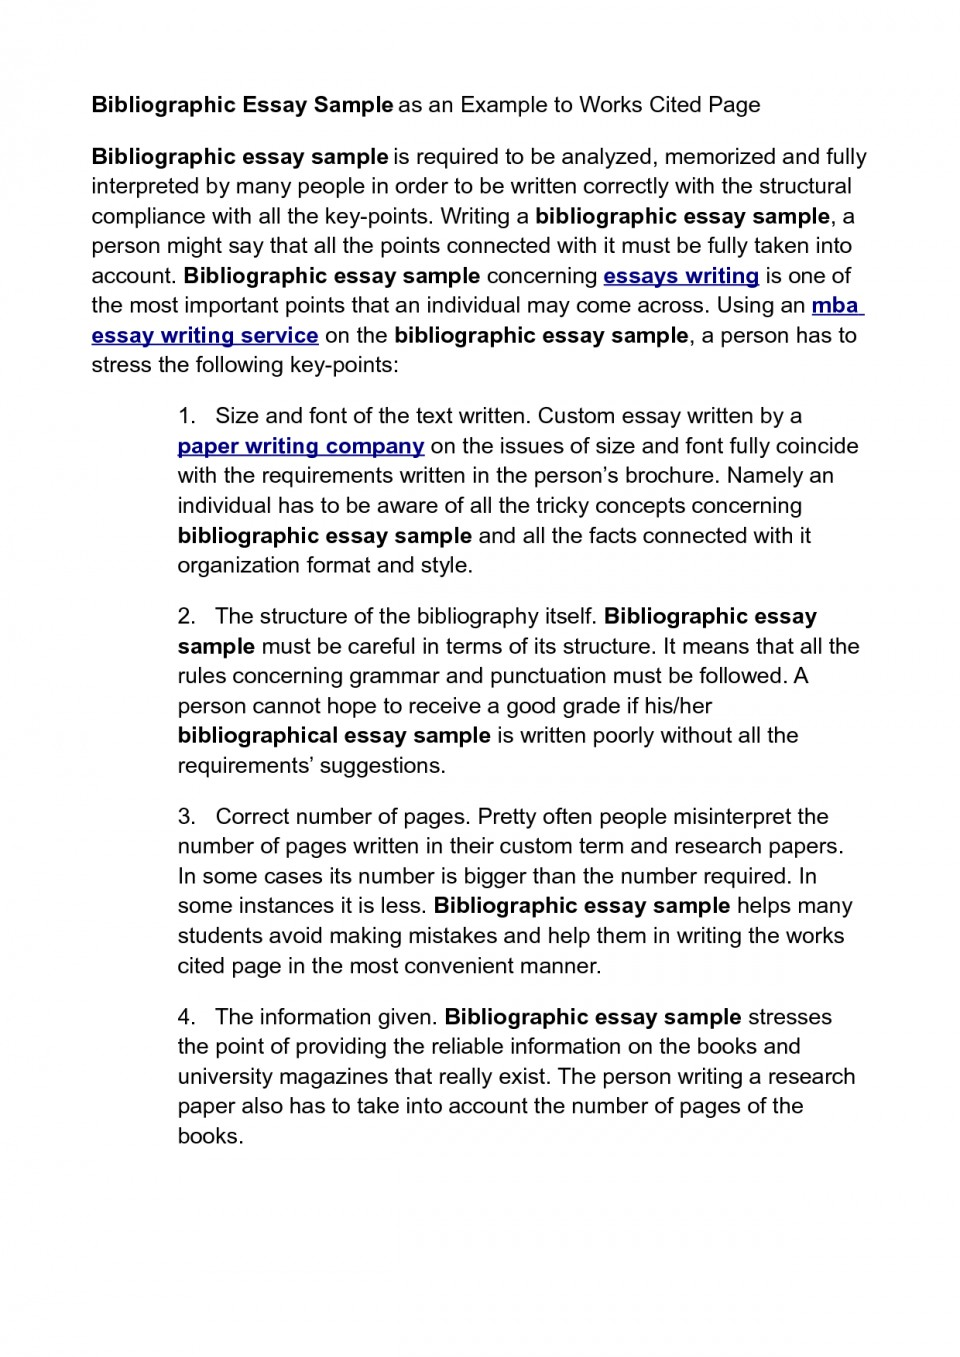 018 How To Cite An Essay Example Sample Persuasive With Works Cited Of Mla L Archaicawful Referencing In A Book Apa Style Text 960